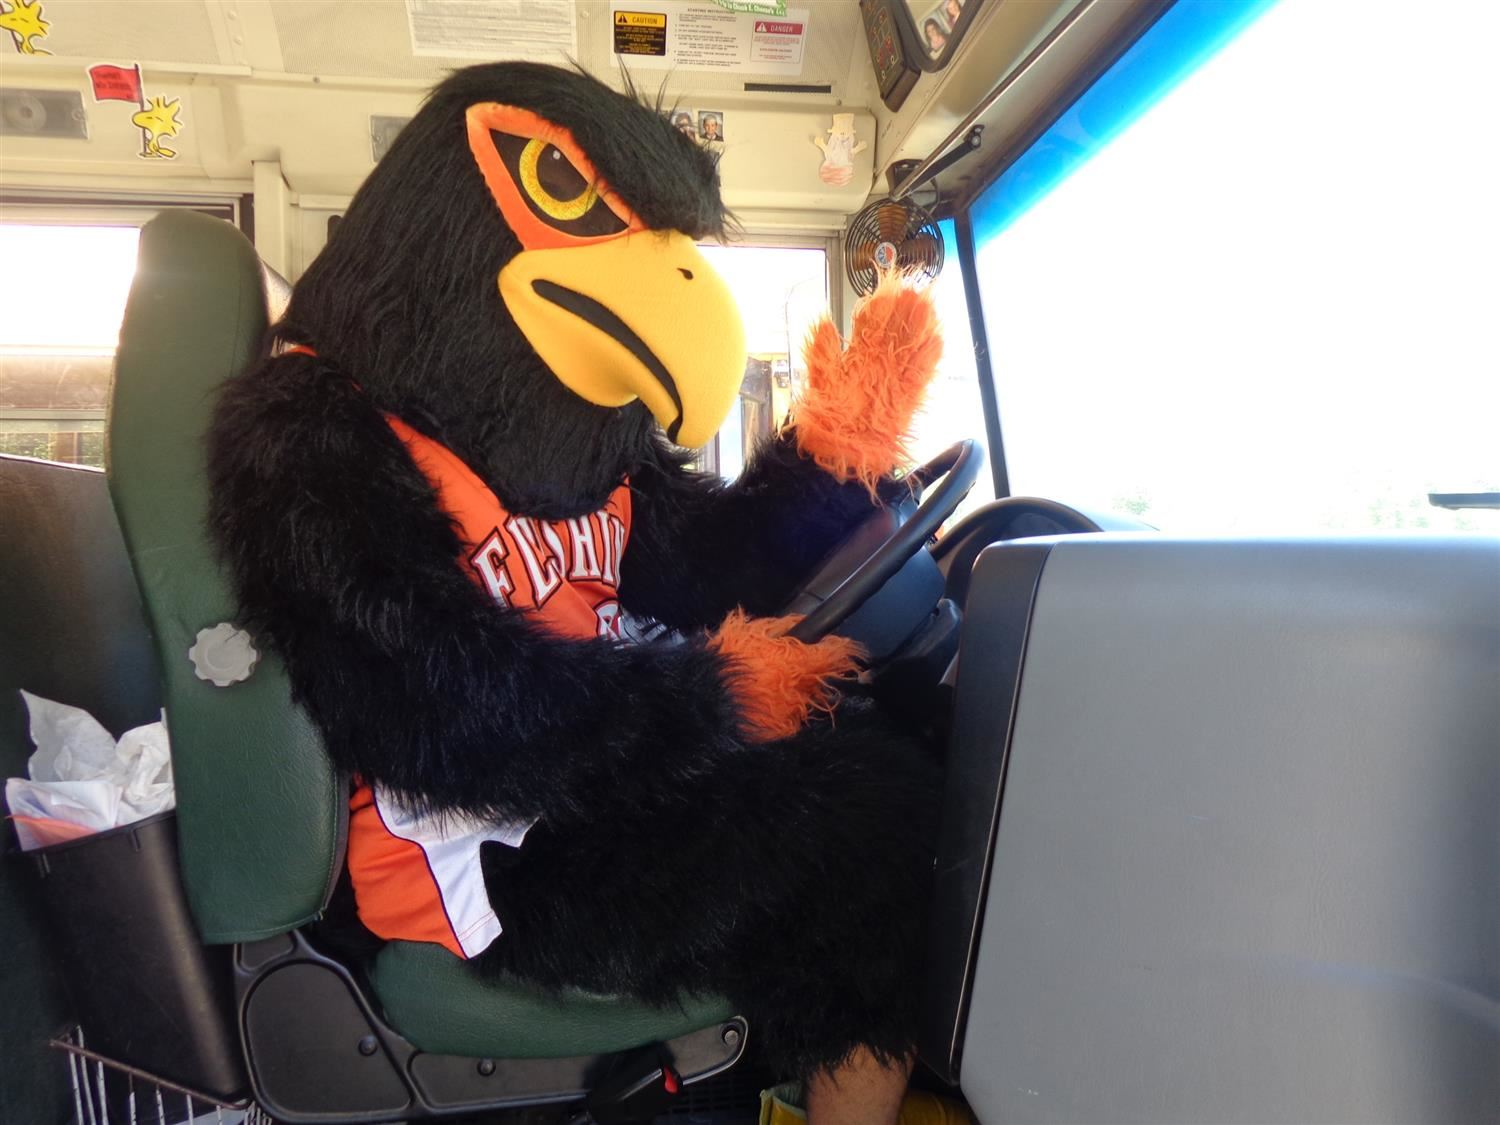 Flushing Raider Mascot driving a bus